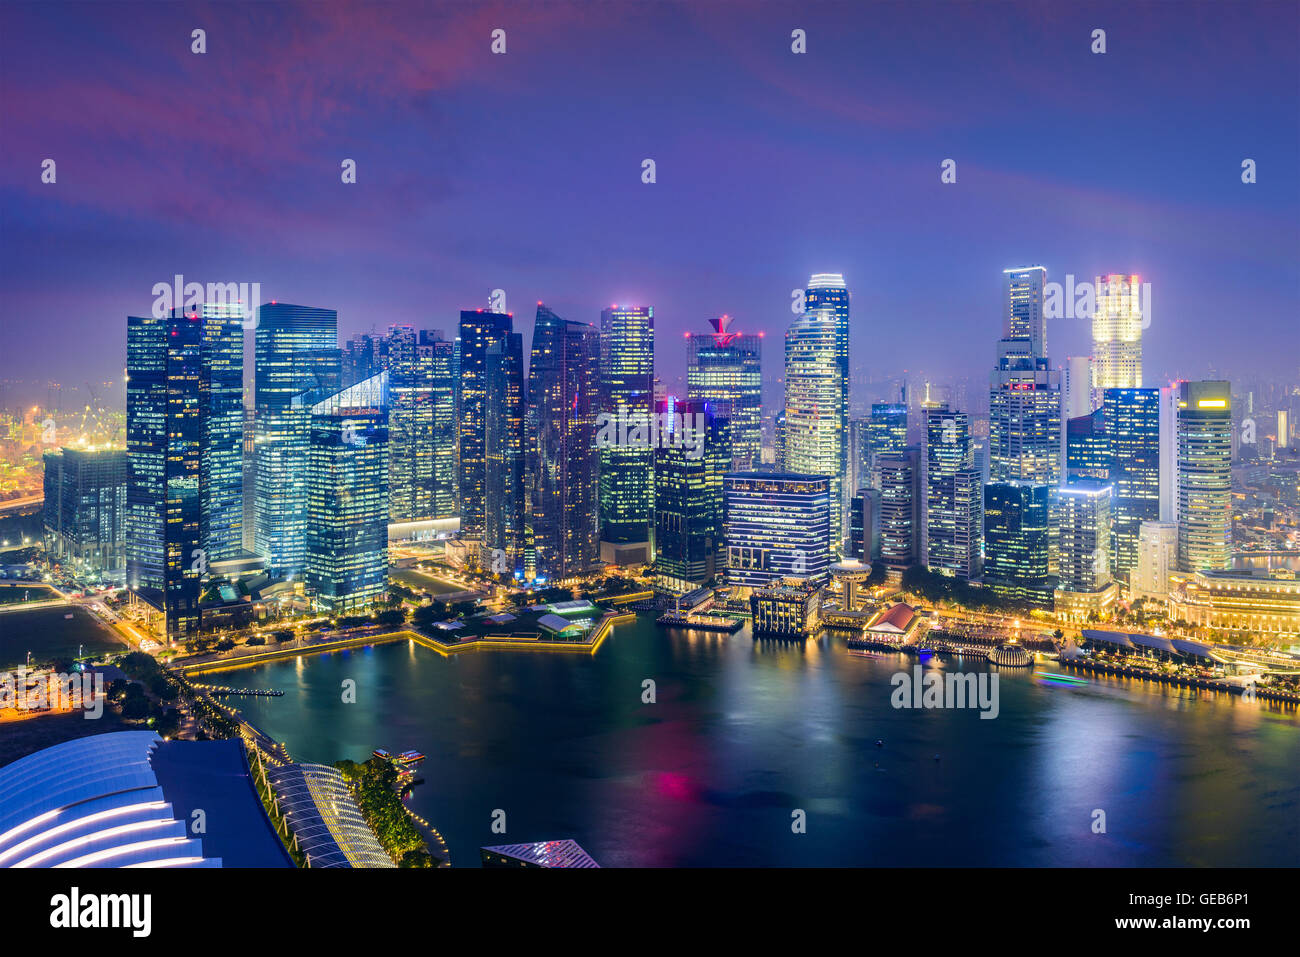 Singapore Financial District skyline at dusk. - Stock Image